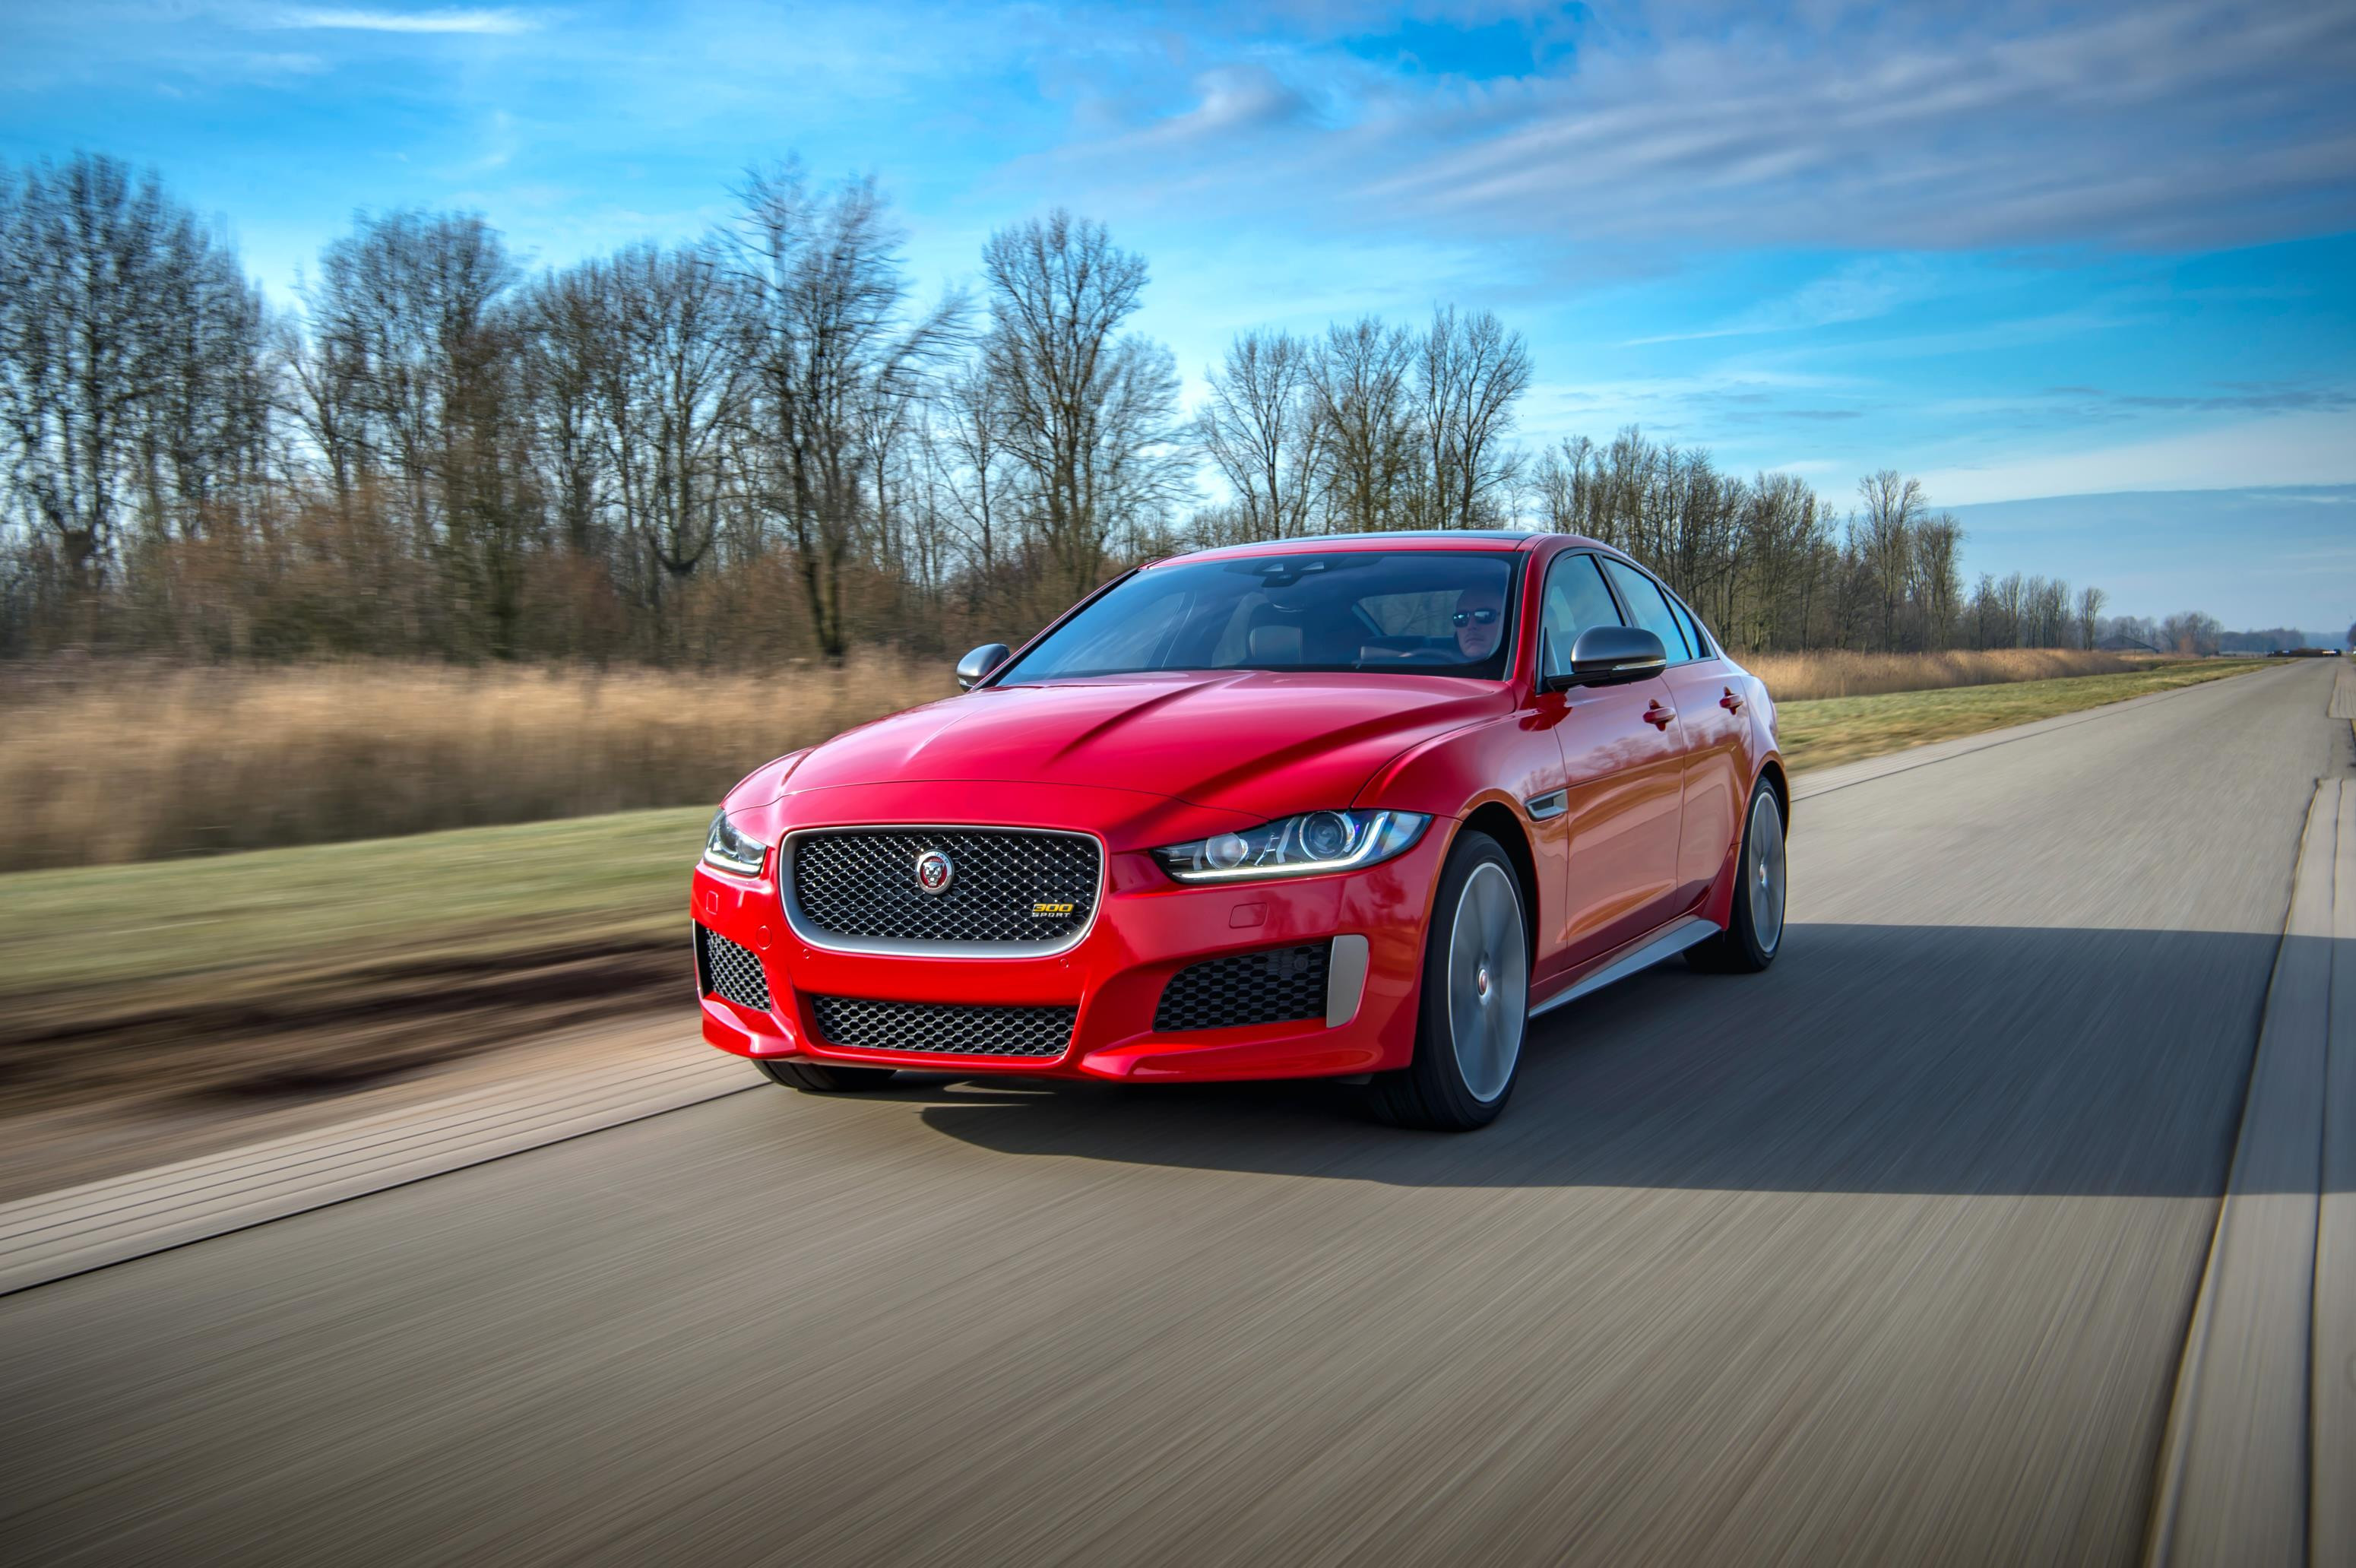 Red Jaguar XE driving towards you with a very blue sky